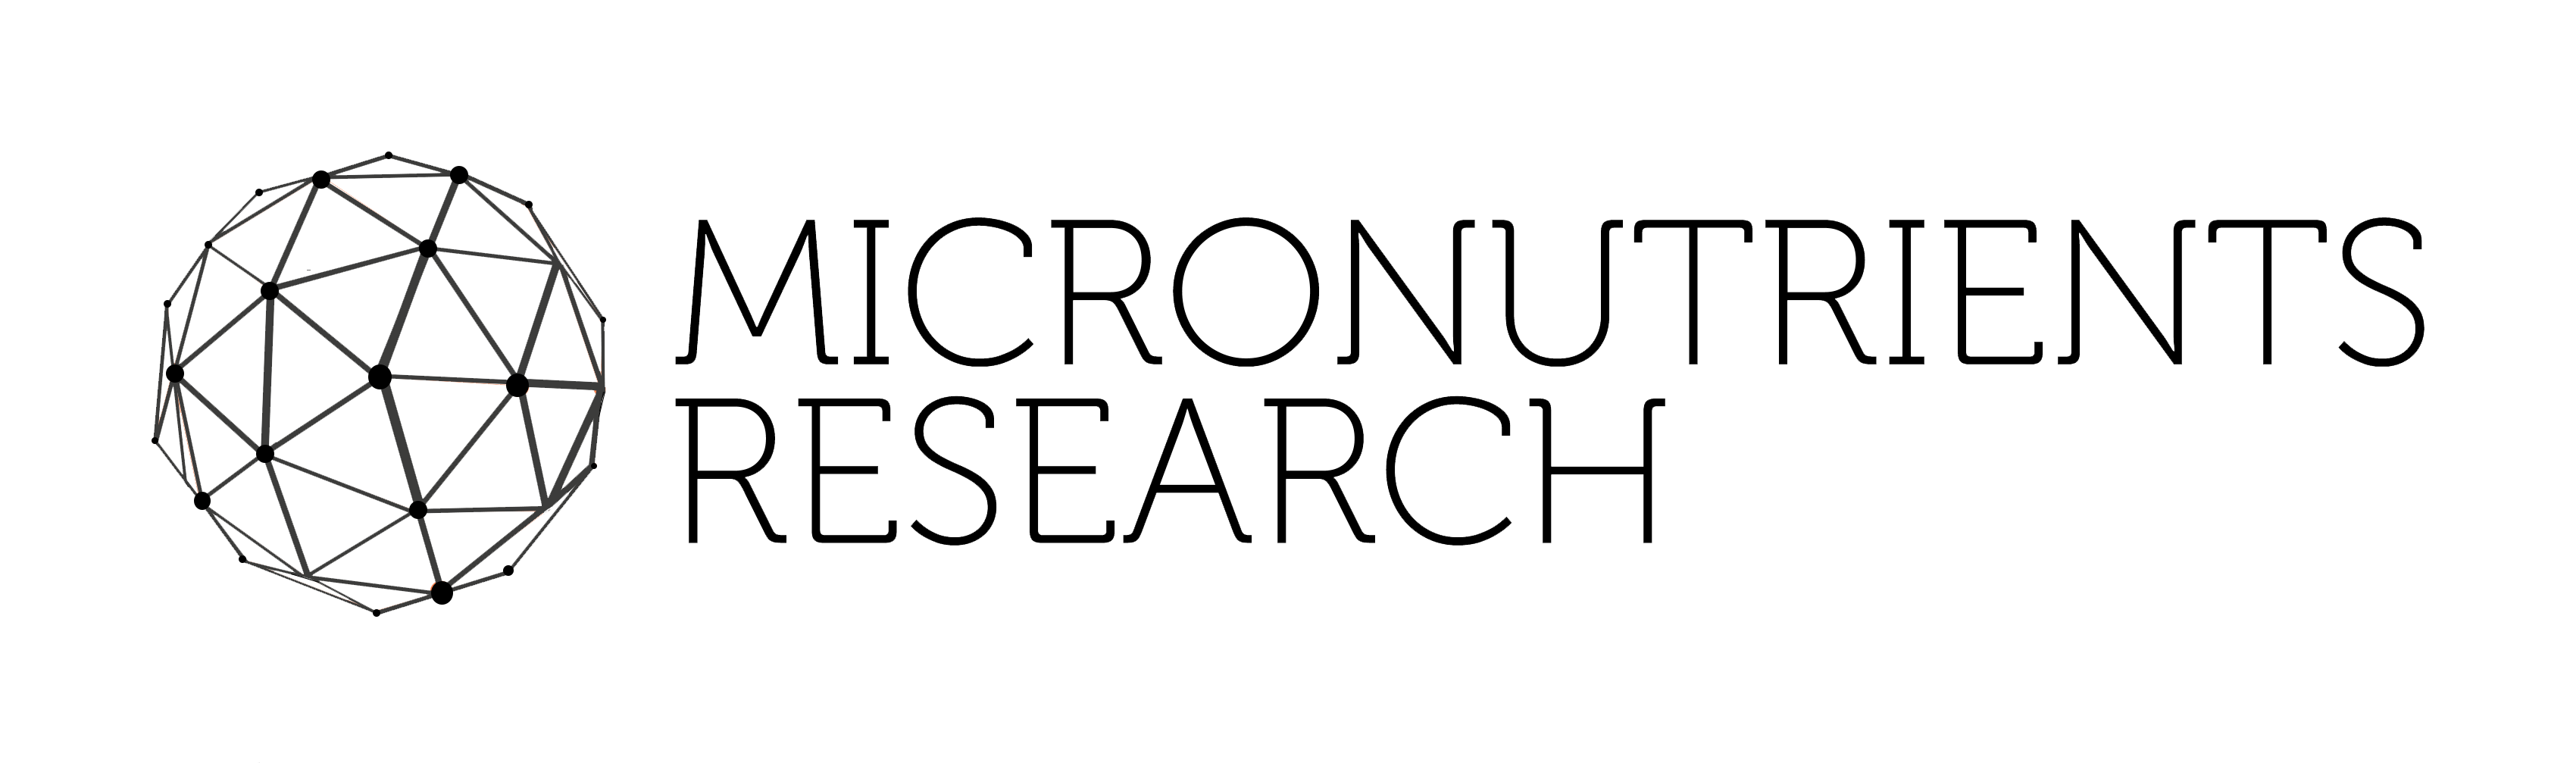 Micronutrients Research-